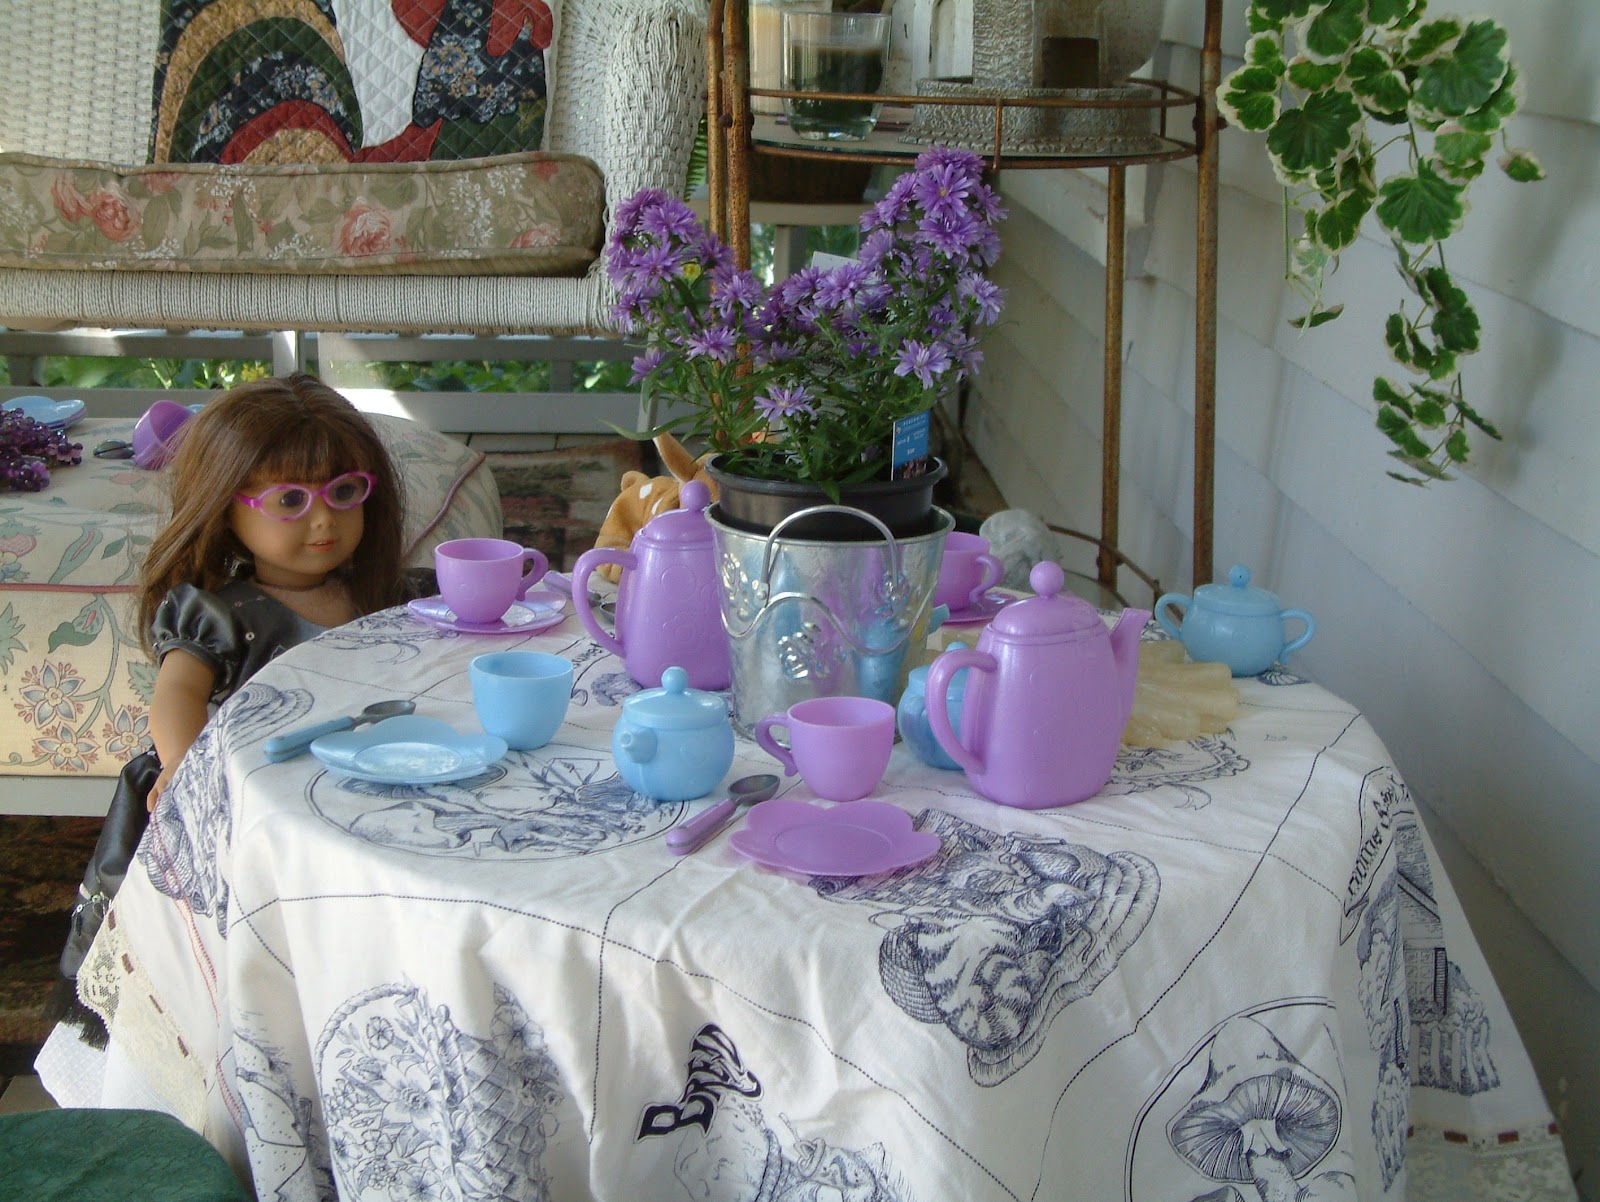 april 39 s country life tea party table setting for the dolls. Black Bedroom Furniture Sets. Home Design Ideas